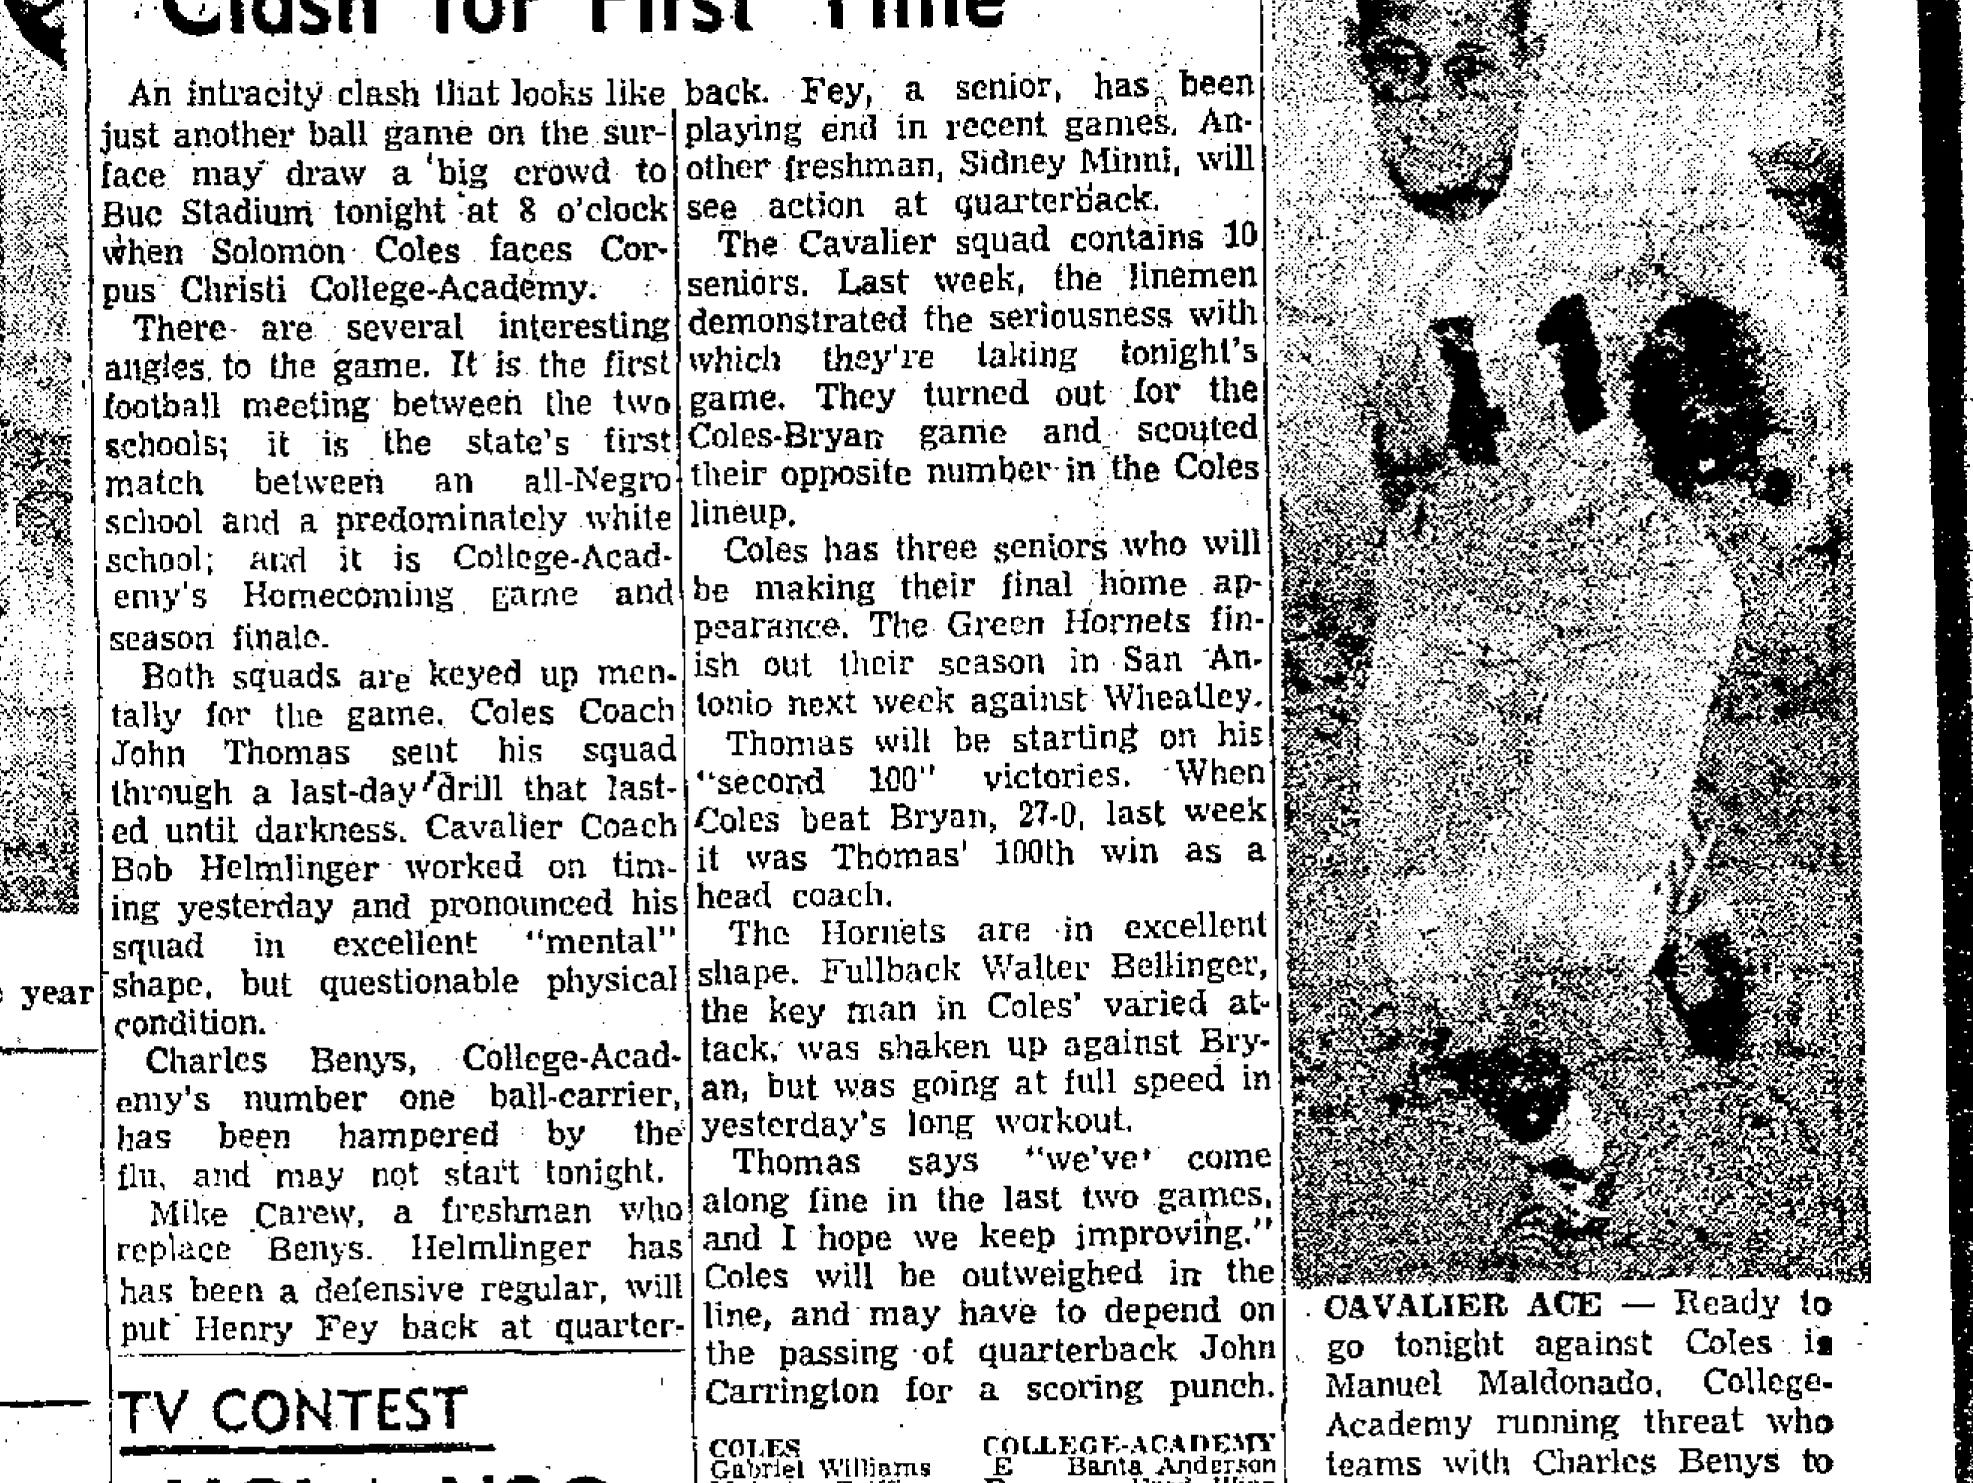 Headlines trumpeted the face off between Solomon Coles High School and Corpus Christi College Academy at Buccaneer Stadium on Nov. 16, 1955, one of the first integrated games in Texas history.